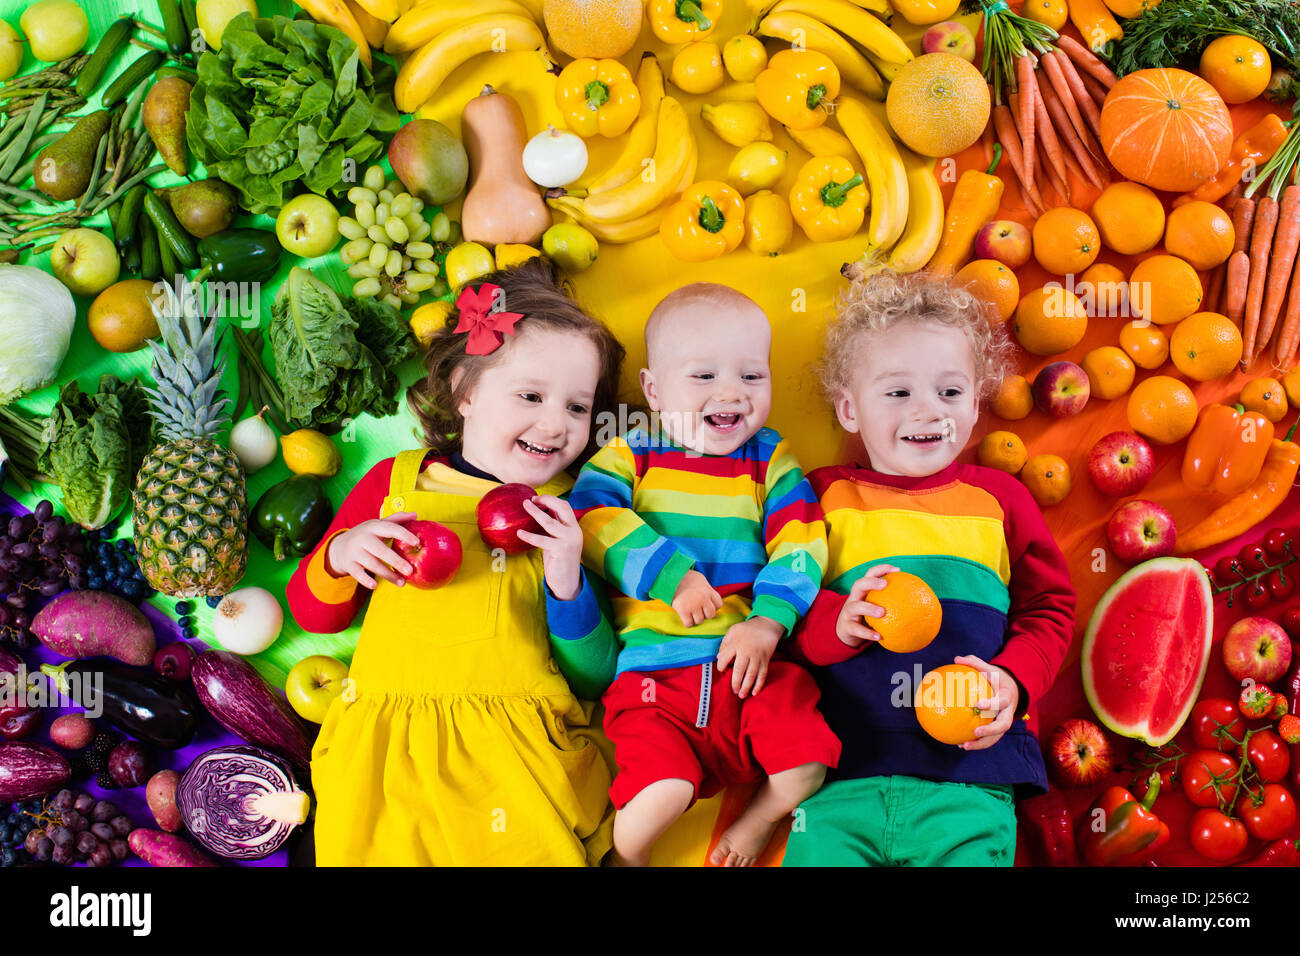 Boy, girl and baby with variety of fruit and vegetable. Colorful rainbow of raw fruits and vegetables. Child eating - Stock Image